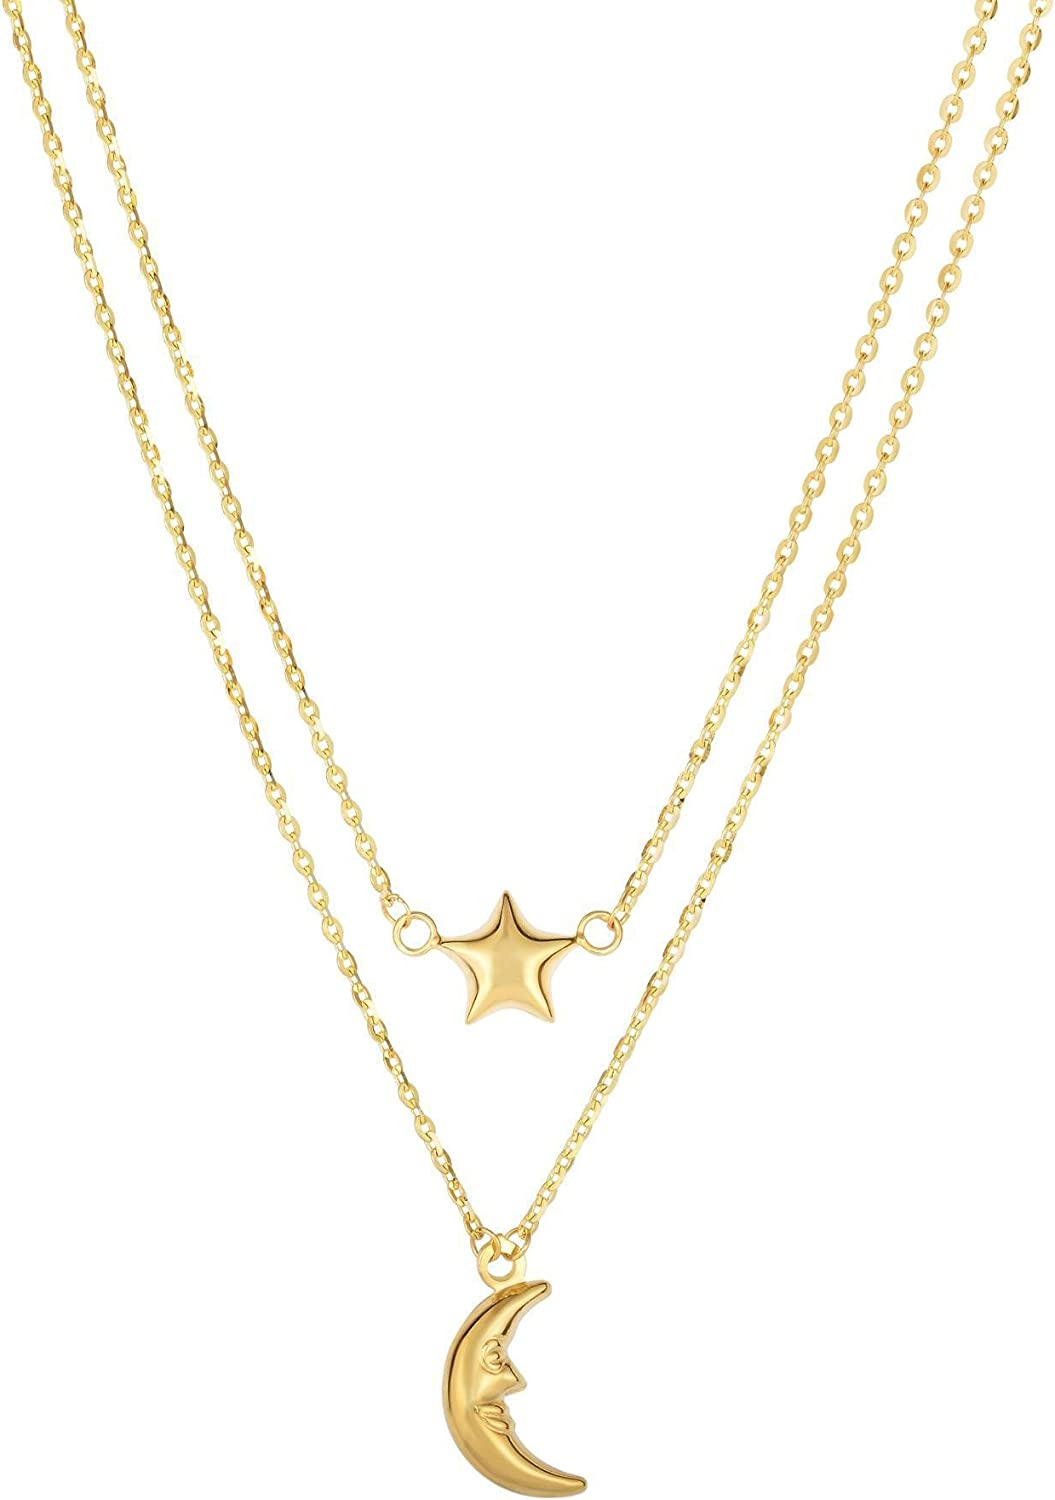 14k Popular popular Yellow Gold Max 55% OFF Moon And Star On S to Single Double In Graduated